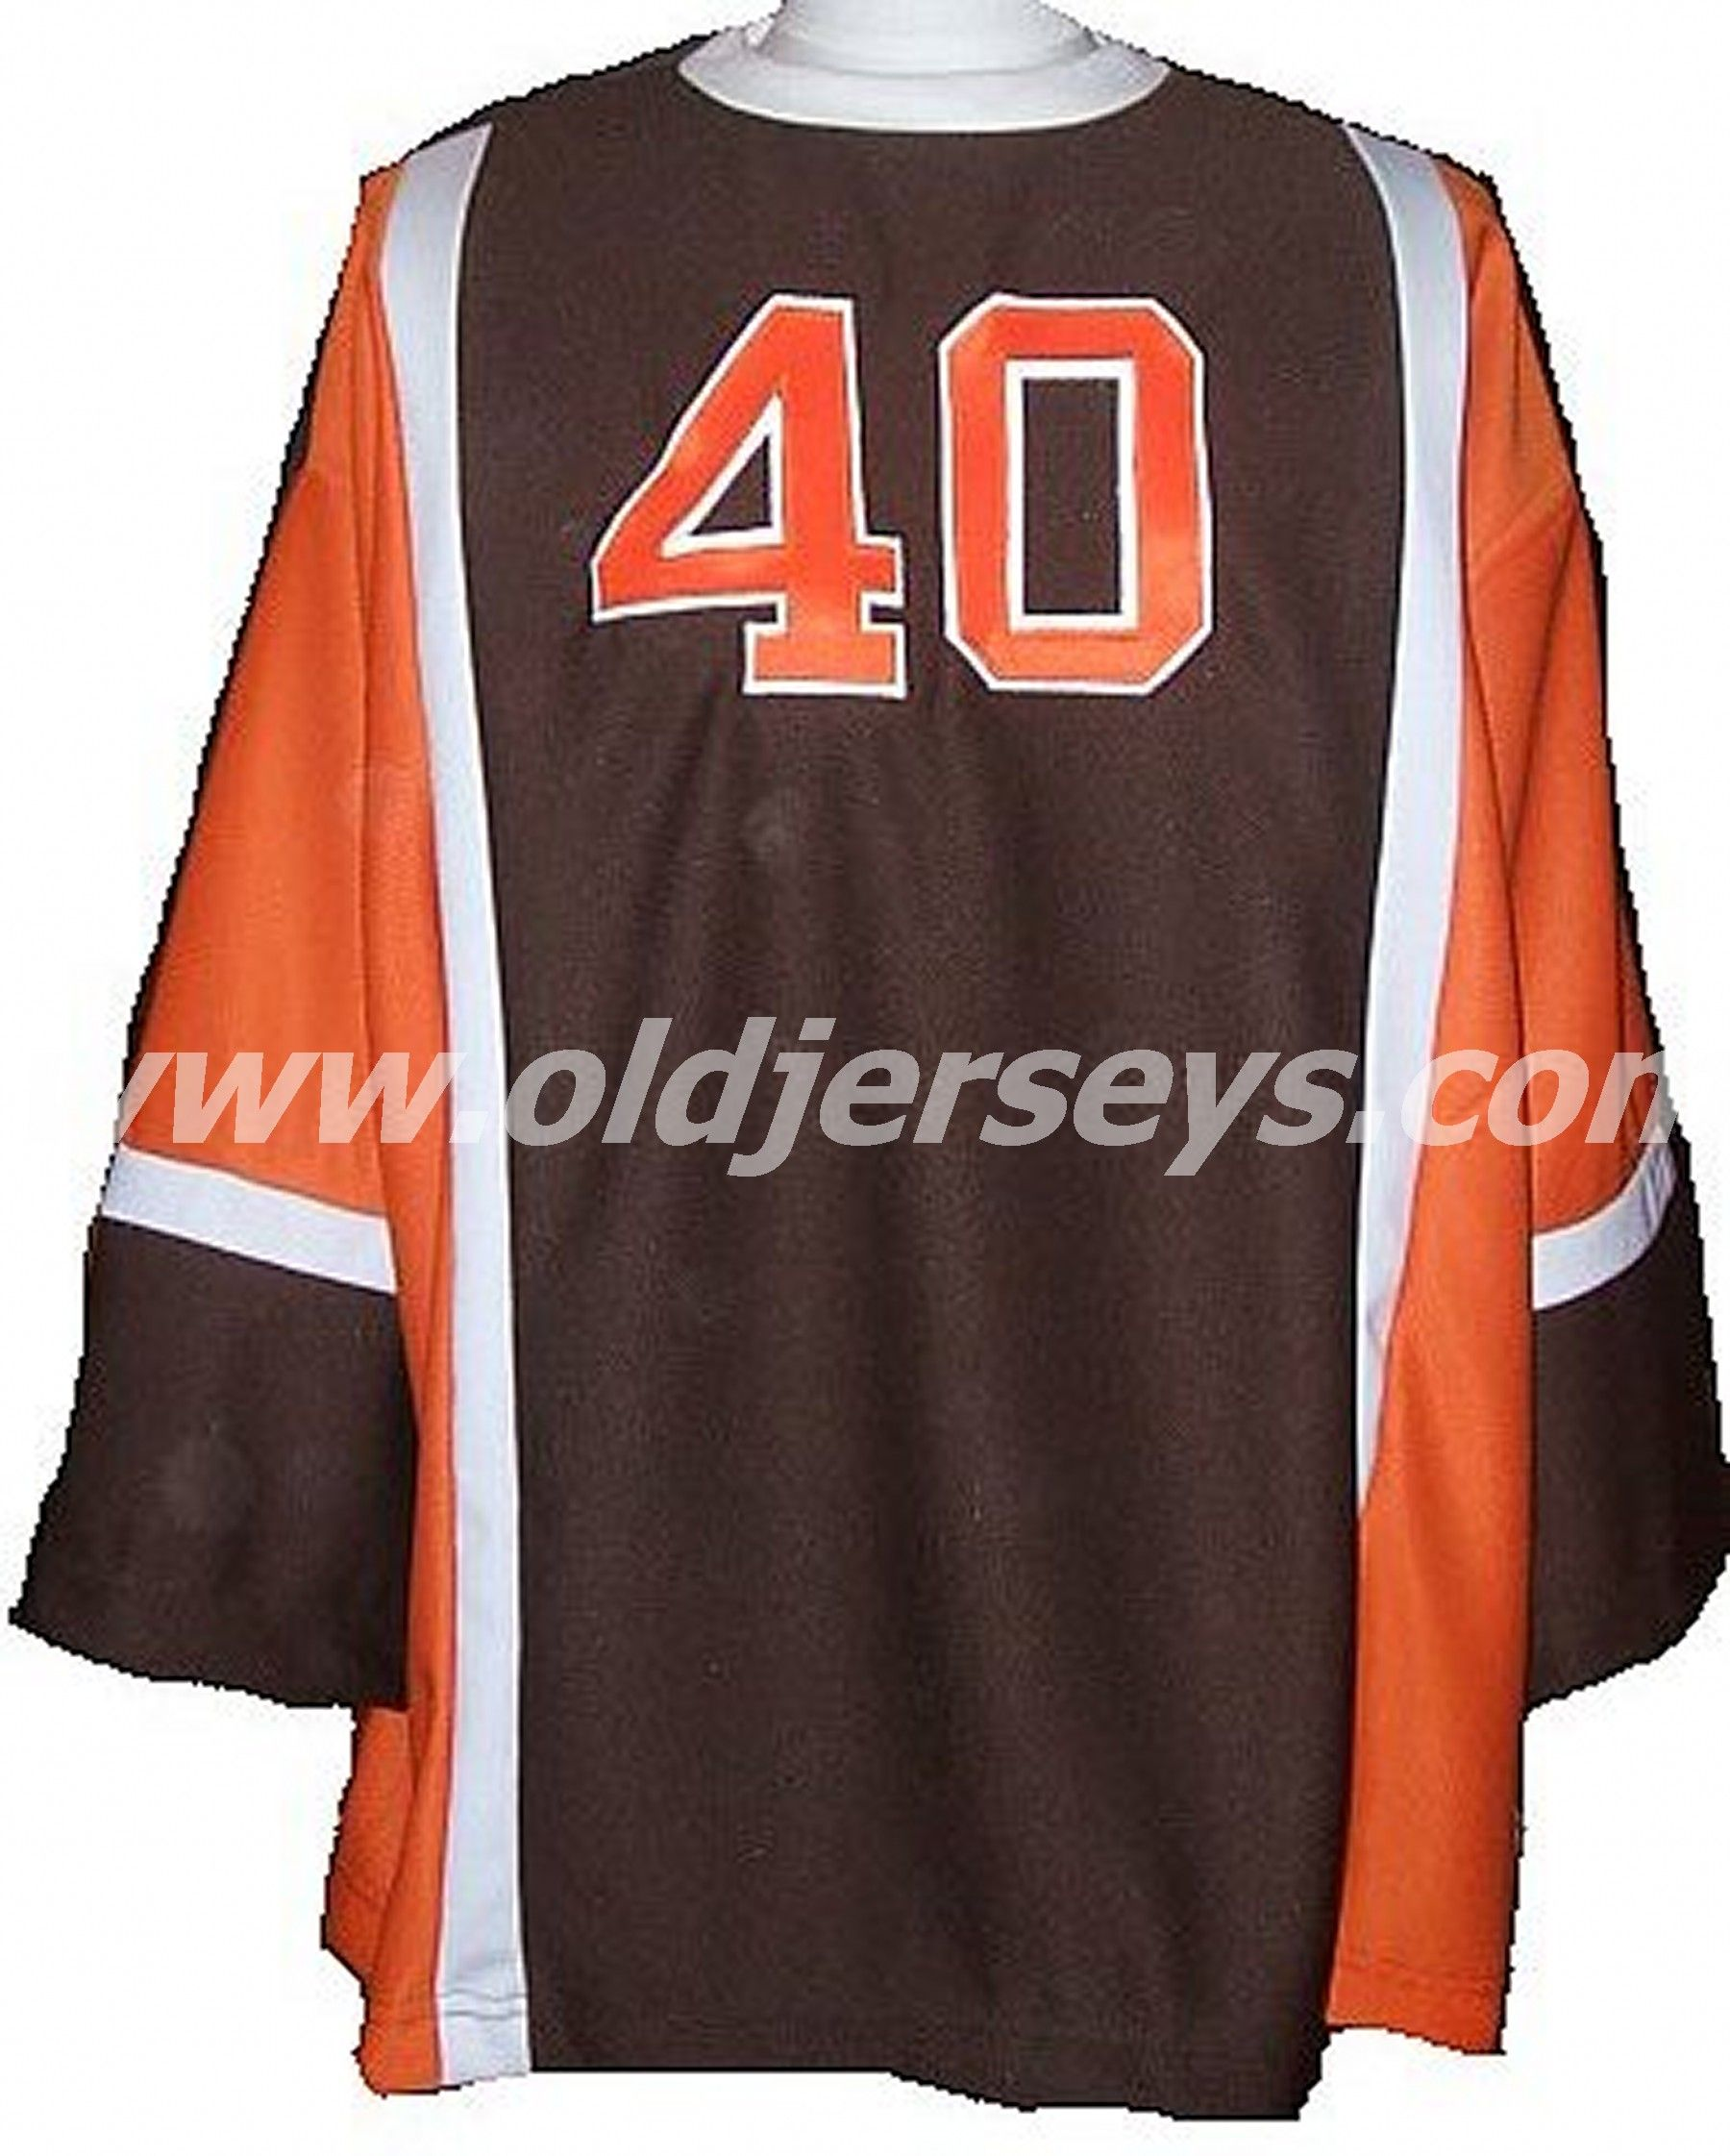 San Francisco Bombers Replica Roller Derby Jersey Roller Derby And